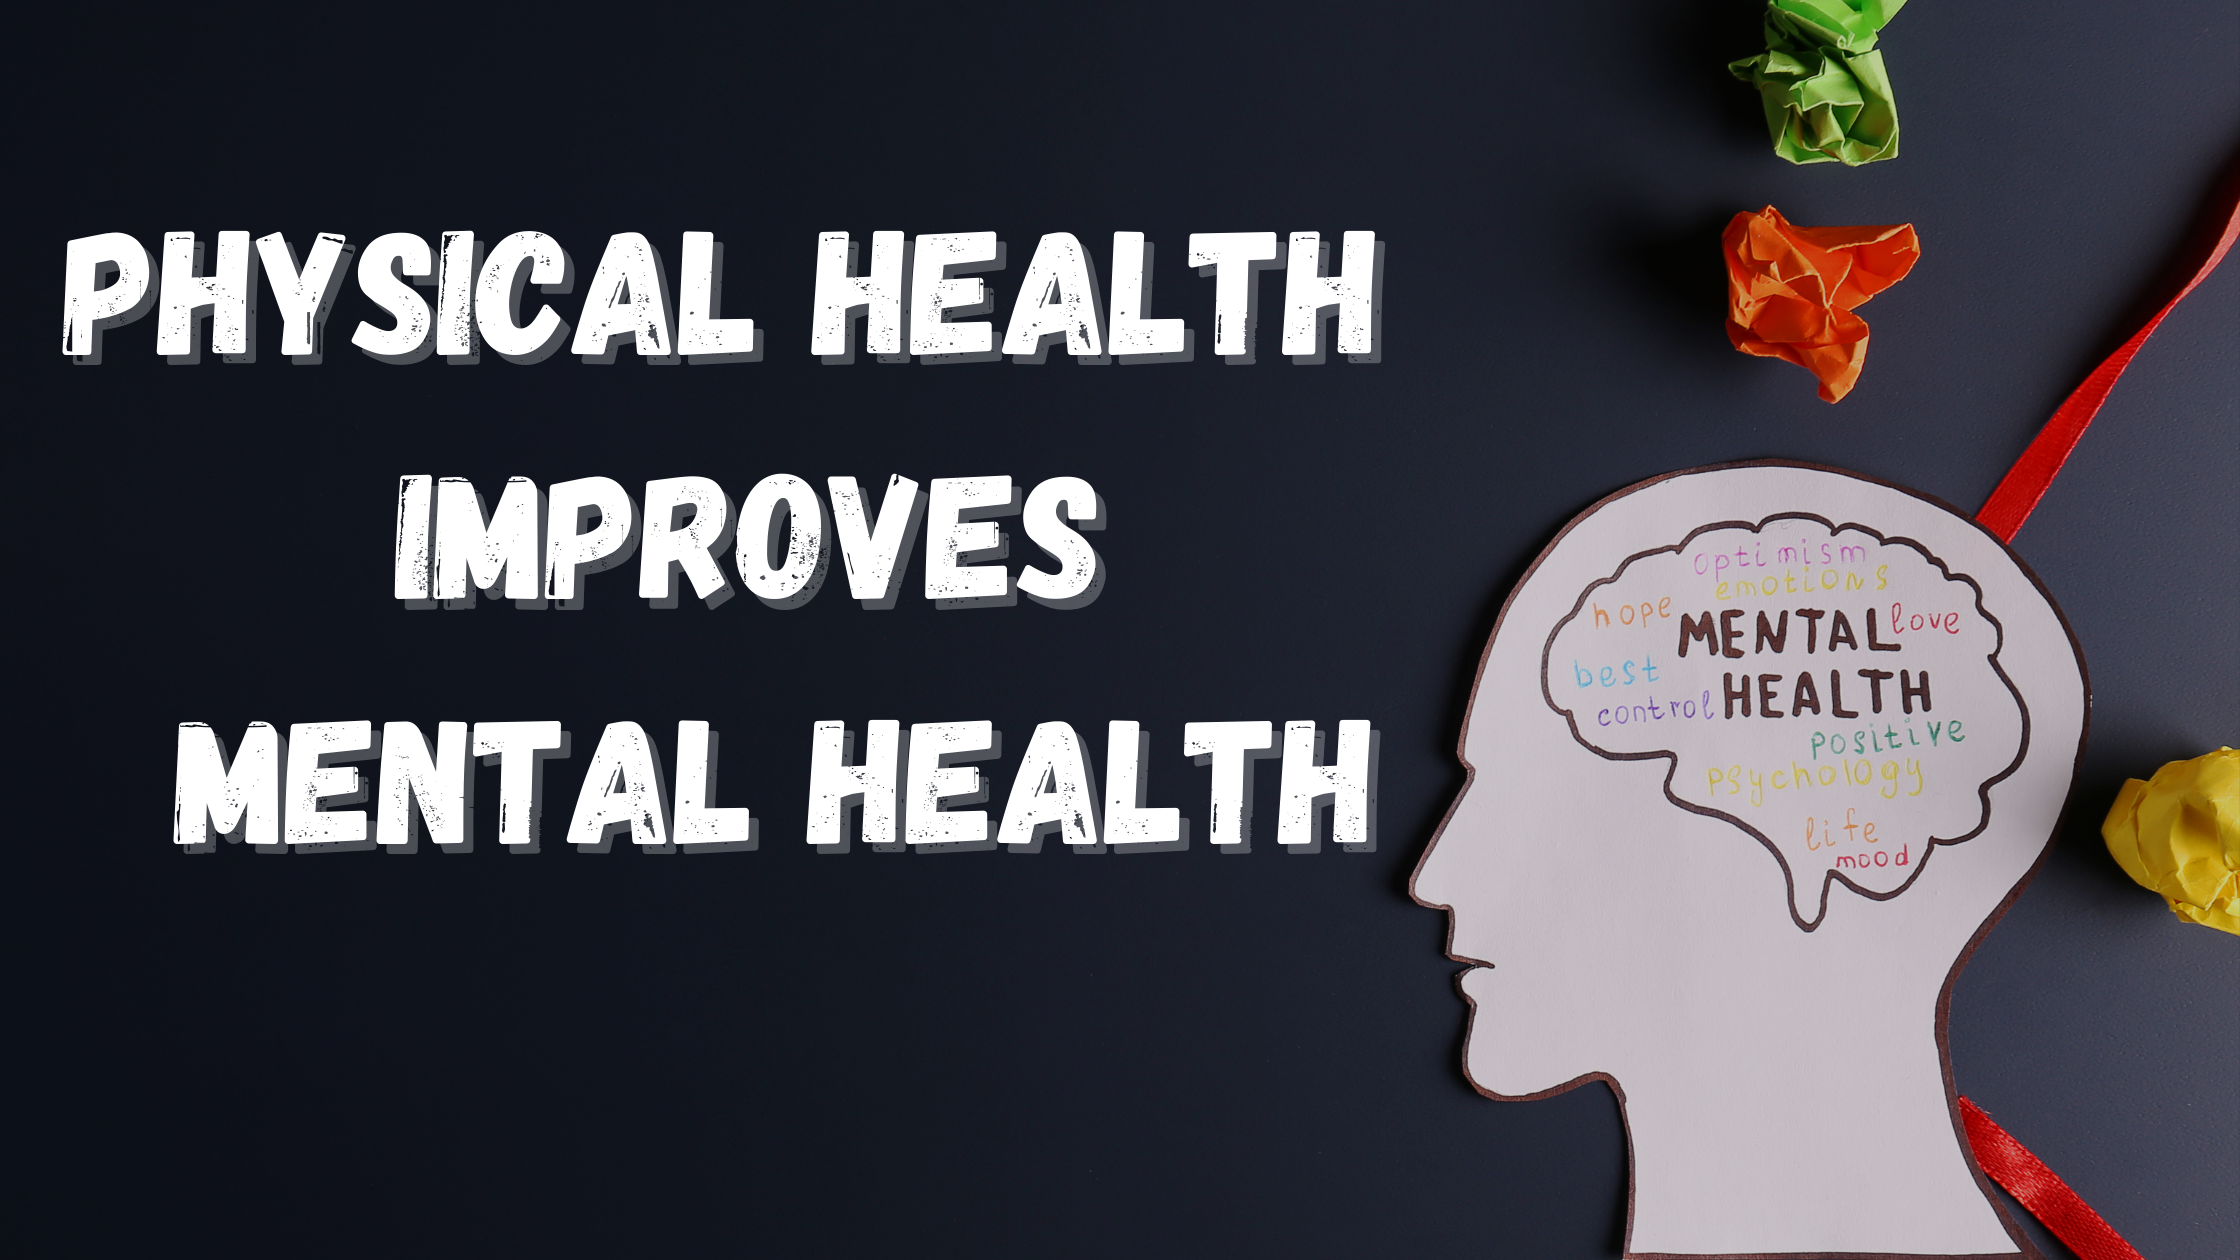 Physical Health improves mental health